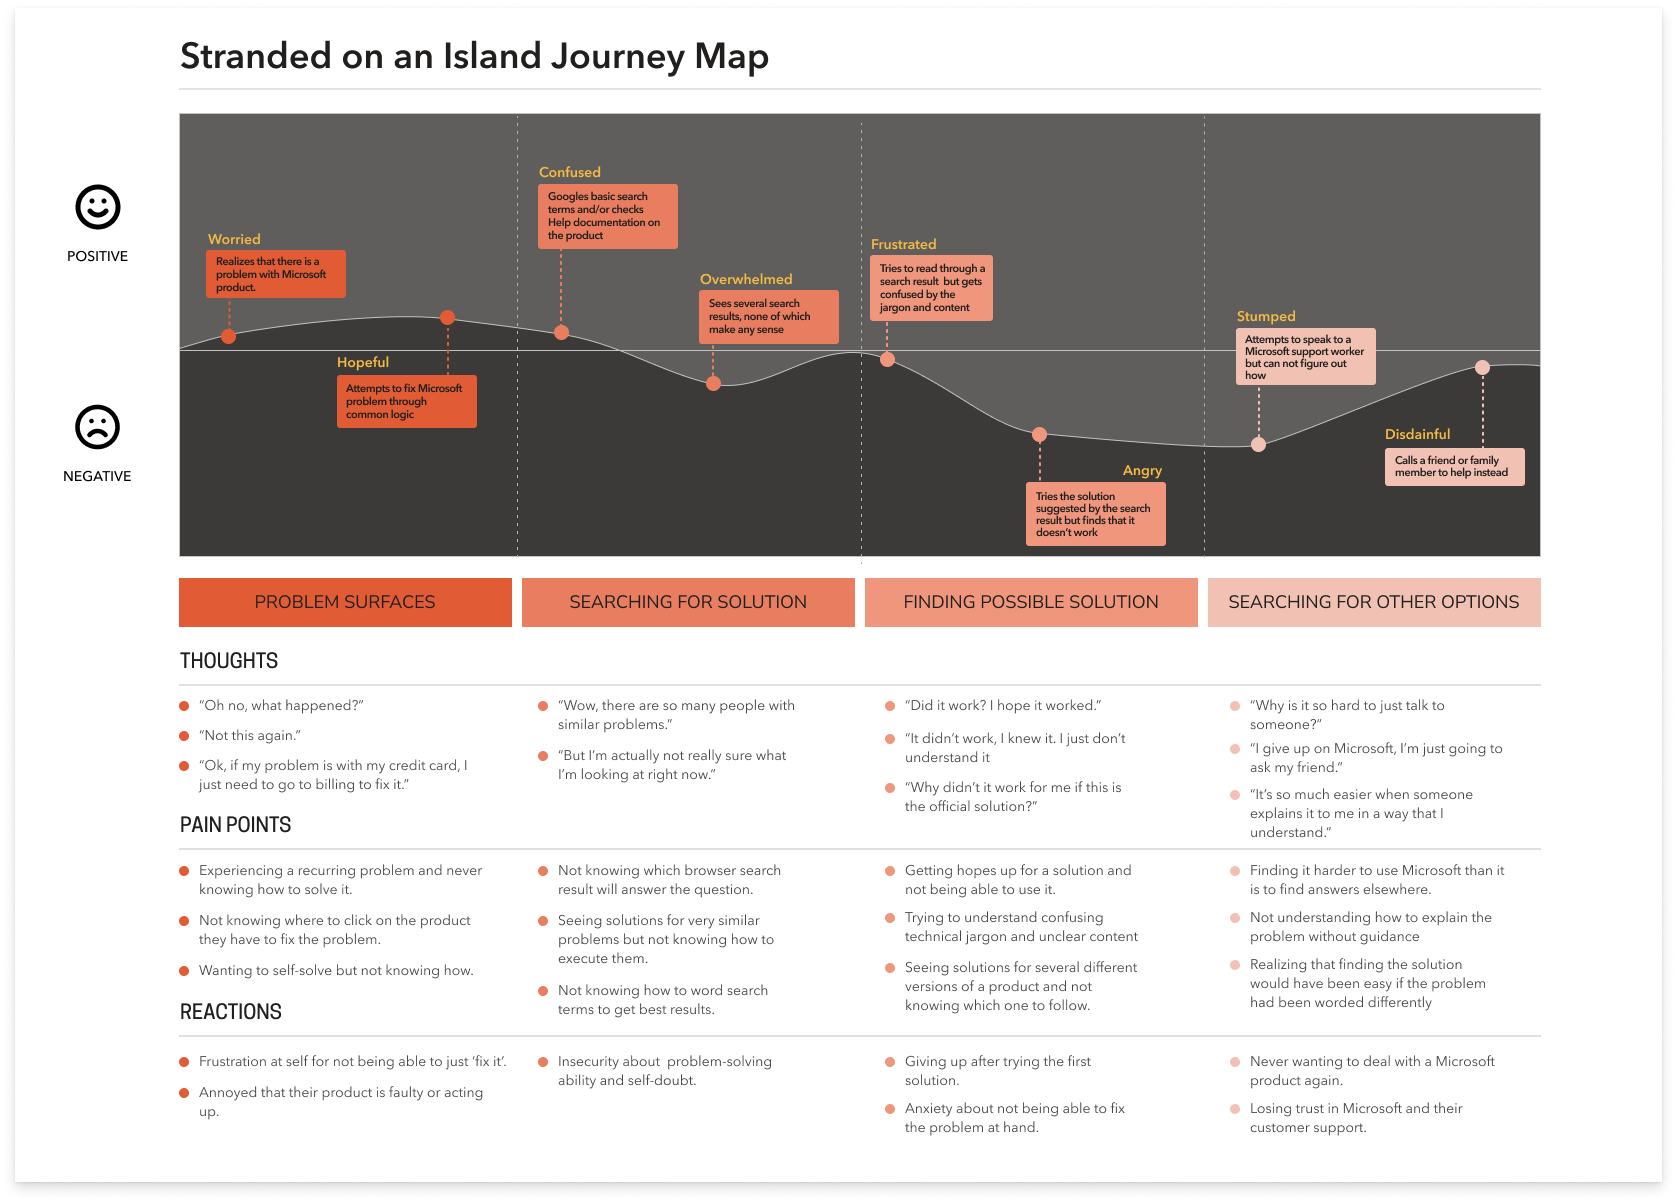 A graphical representation of the thoughts, pain points, reactions, ups and downs in the stranded on an island journey.